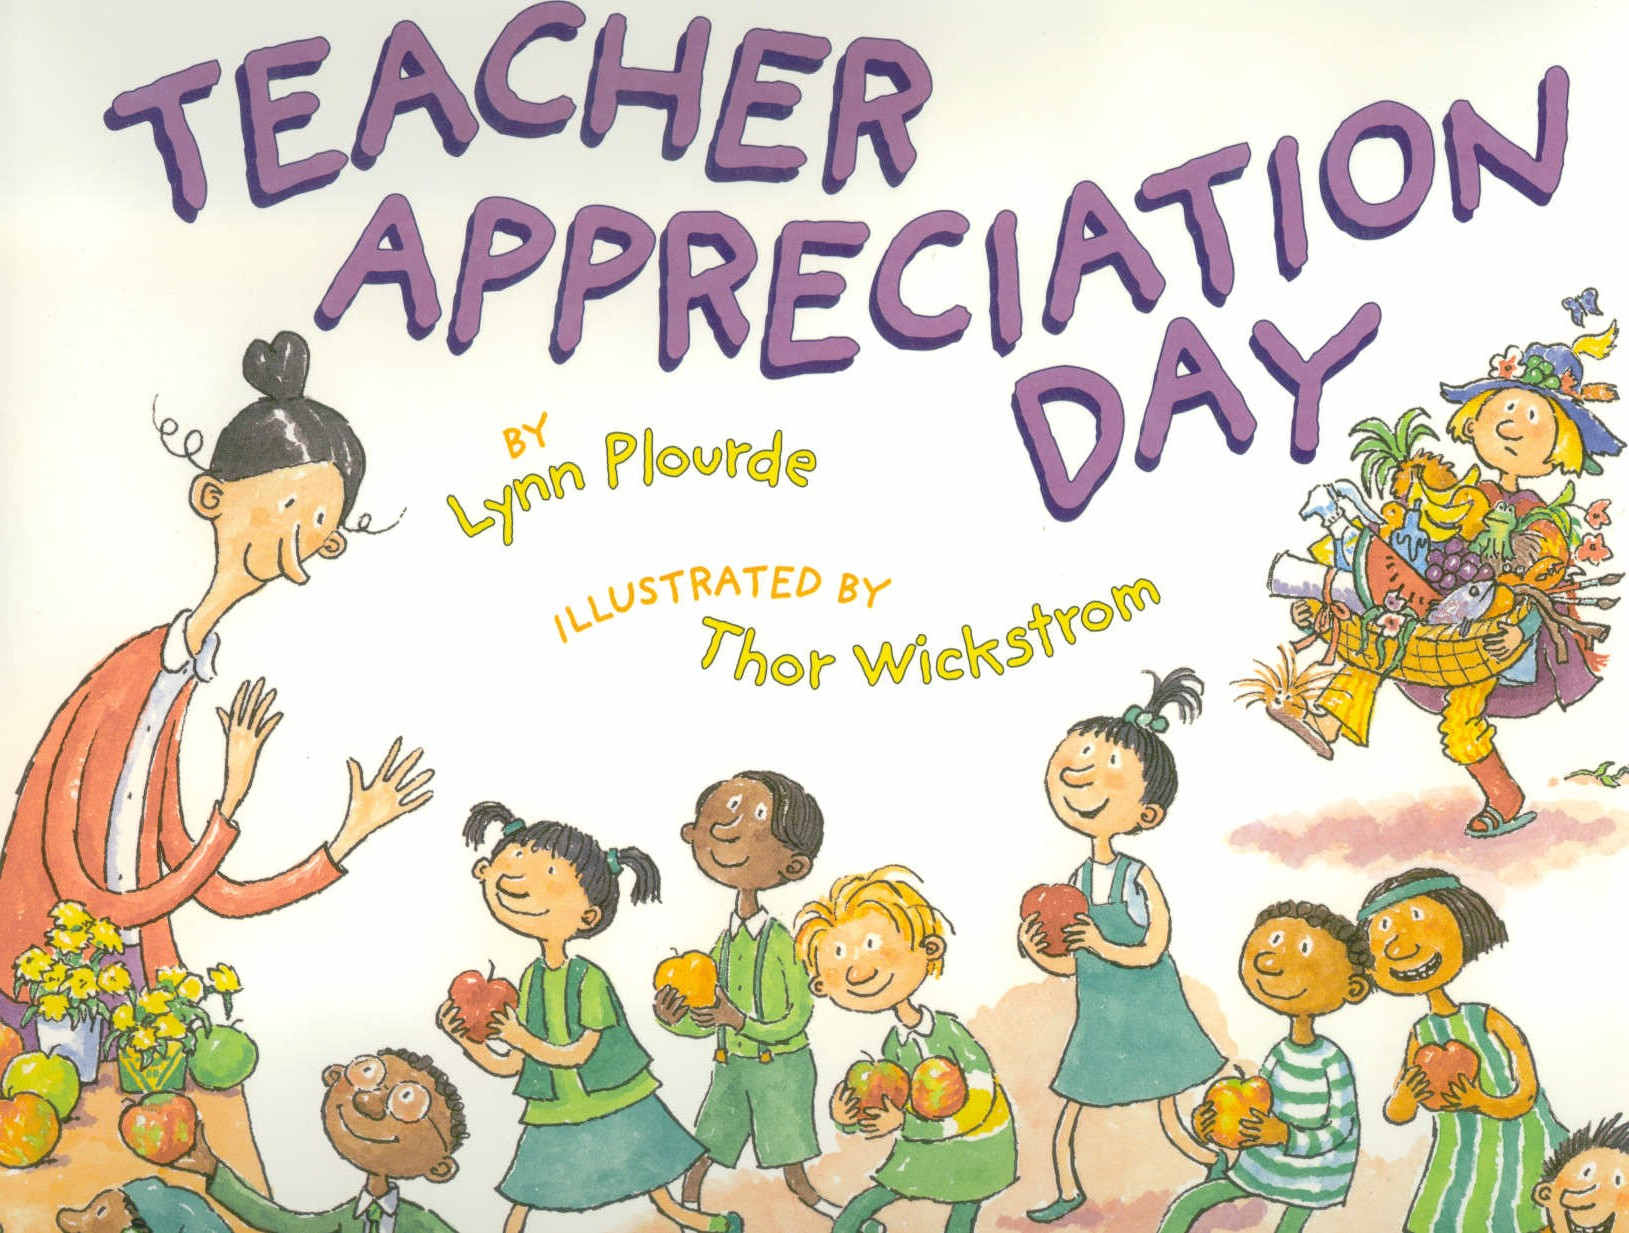 25 Classic Collections Of Teacher Appreciation Day